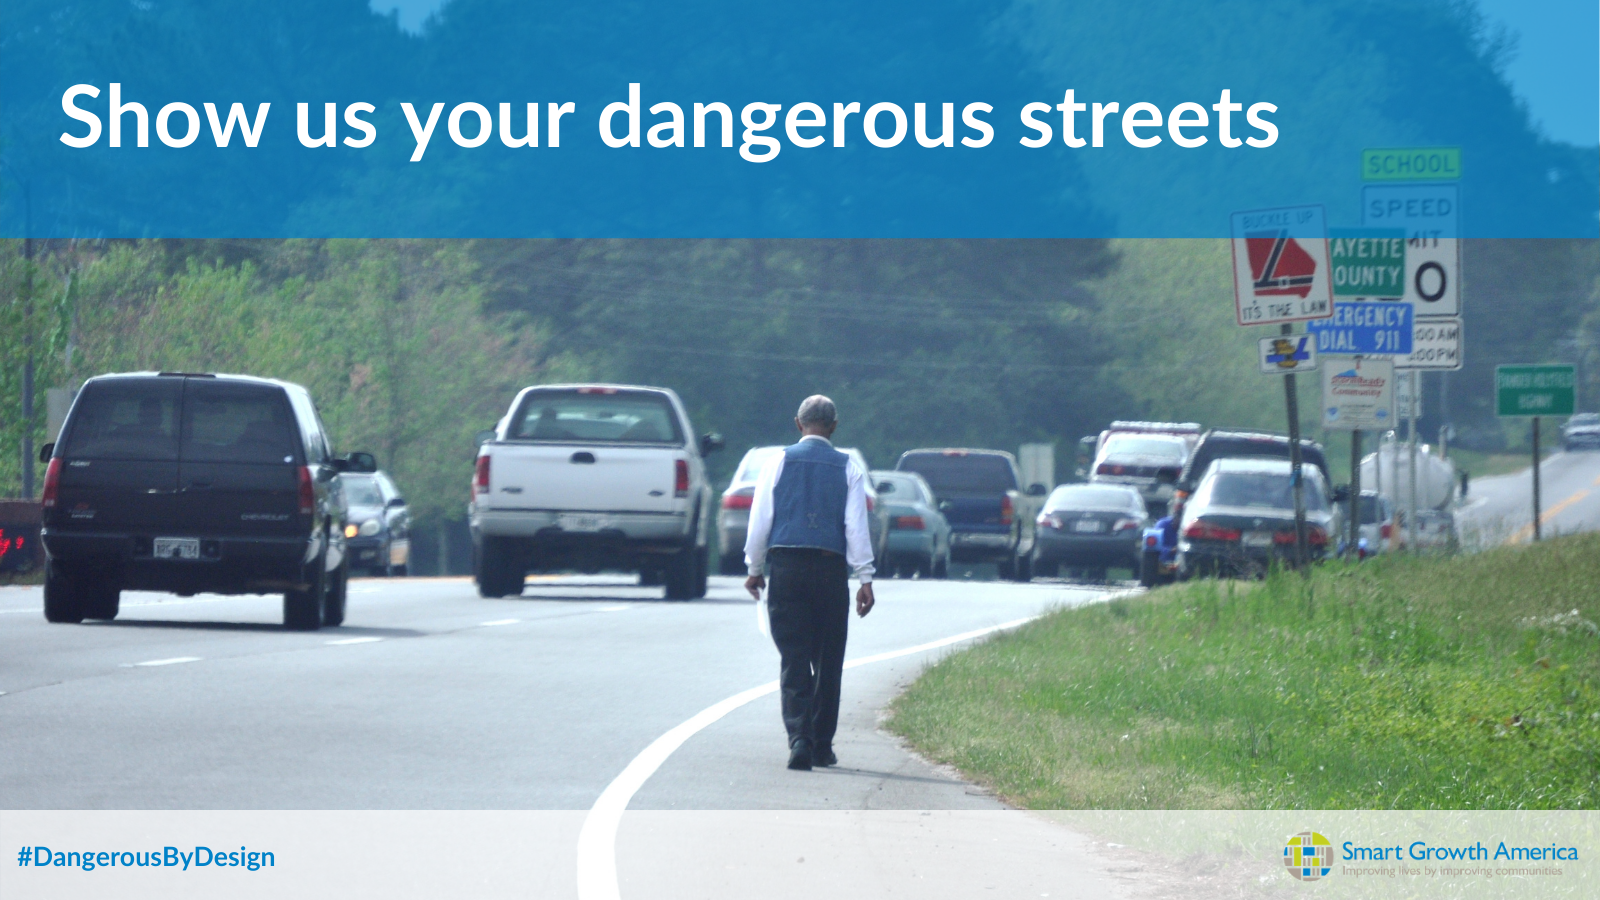 Show us the streets near you that are Dangerous by Design